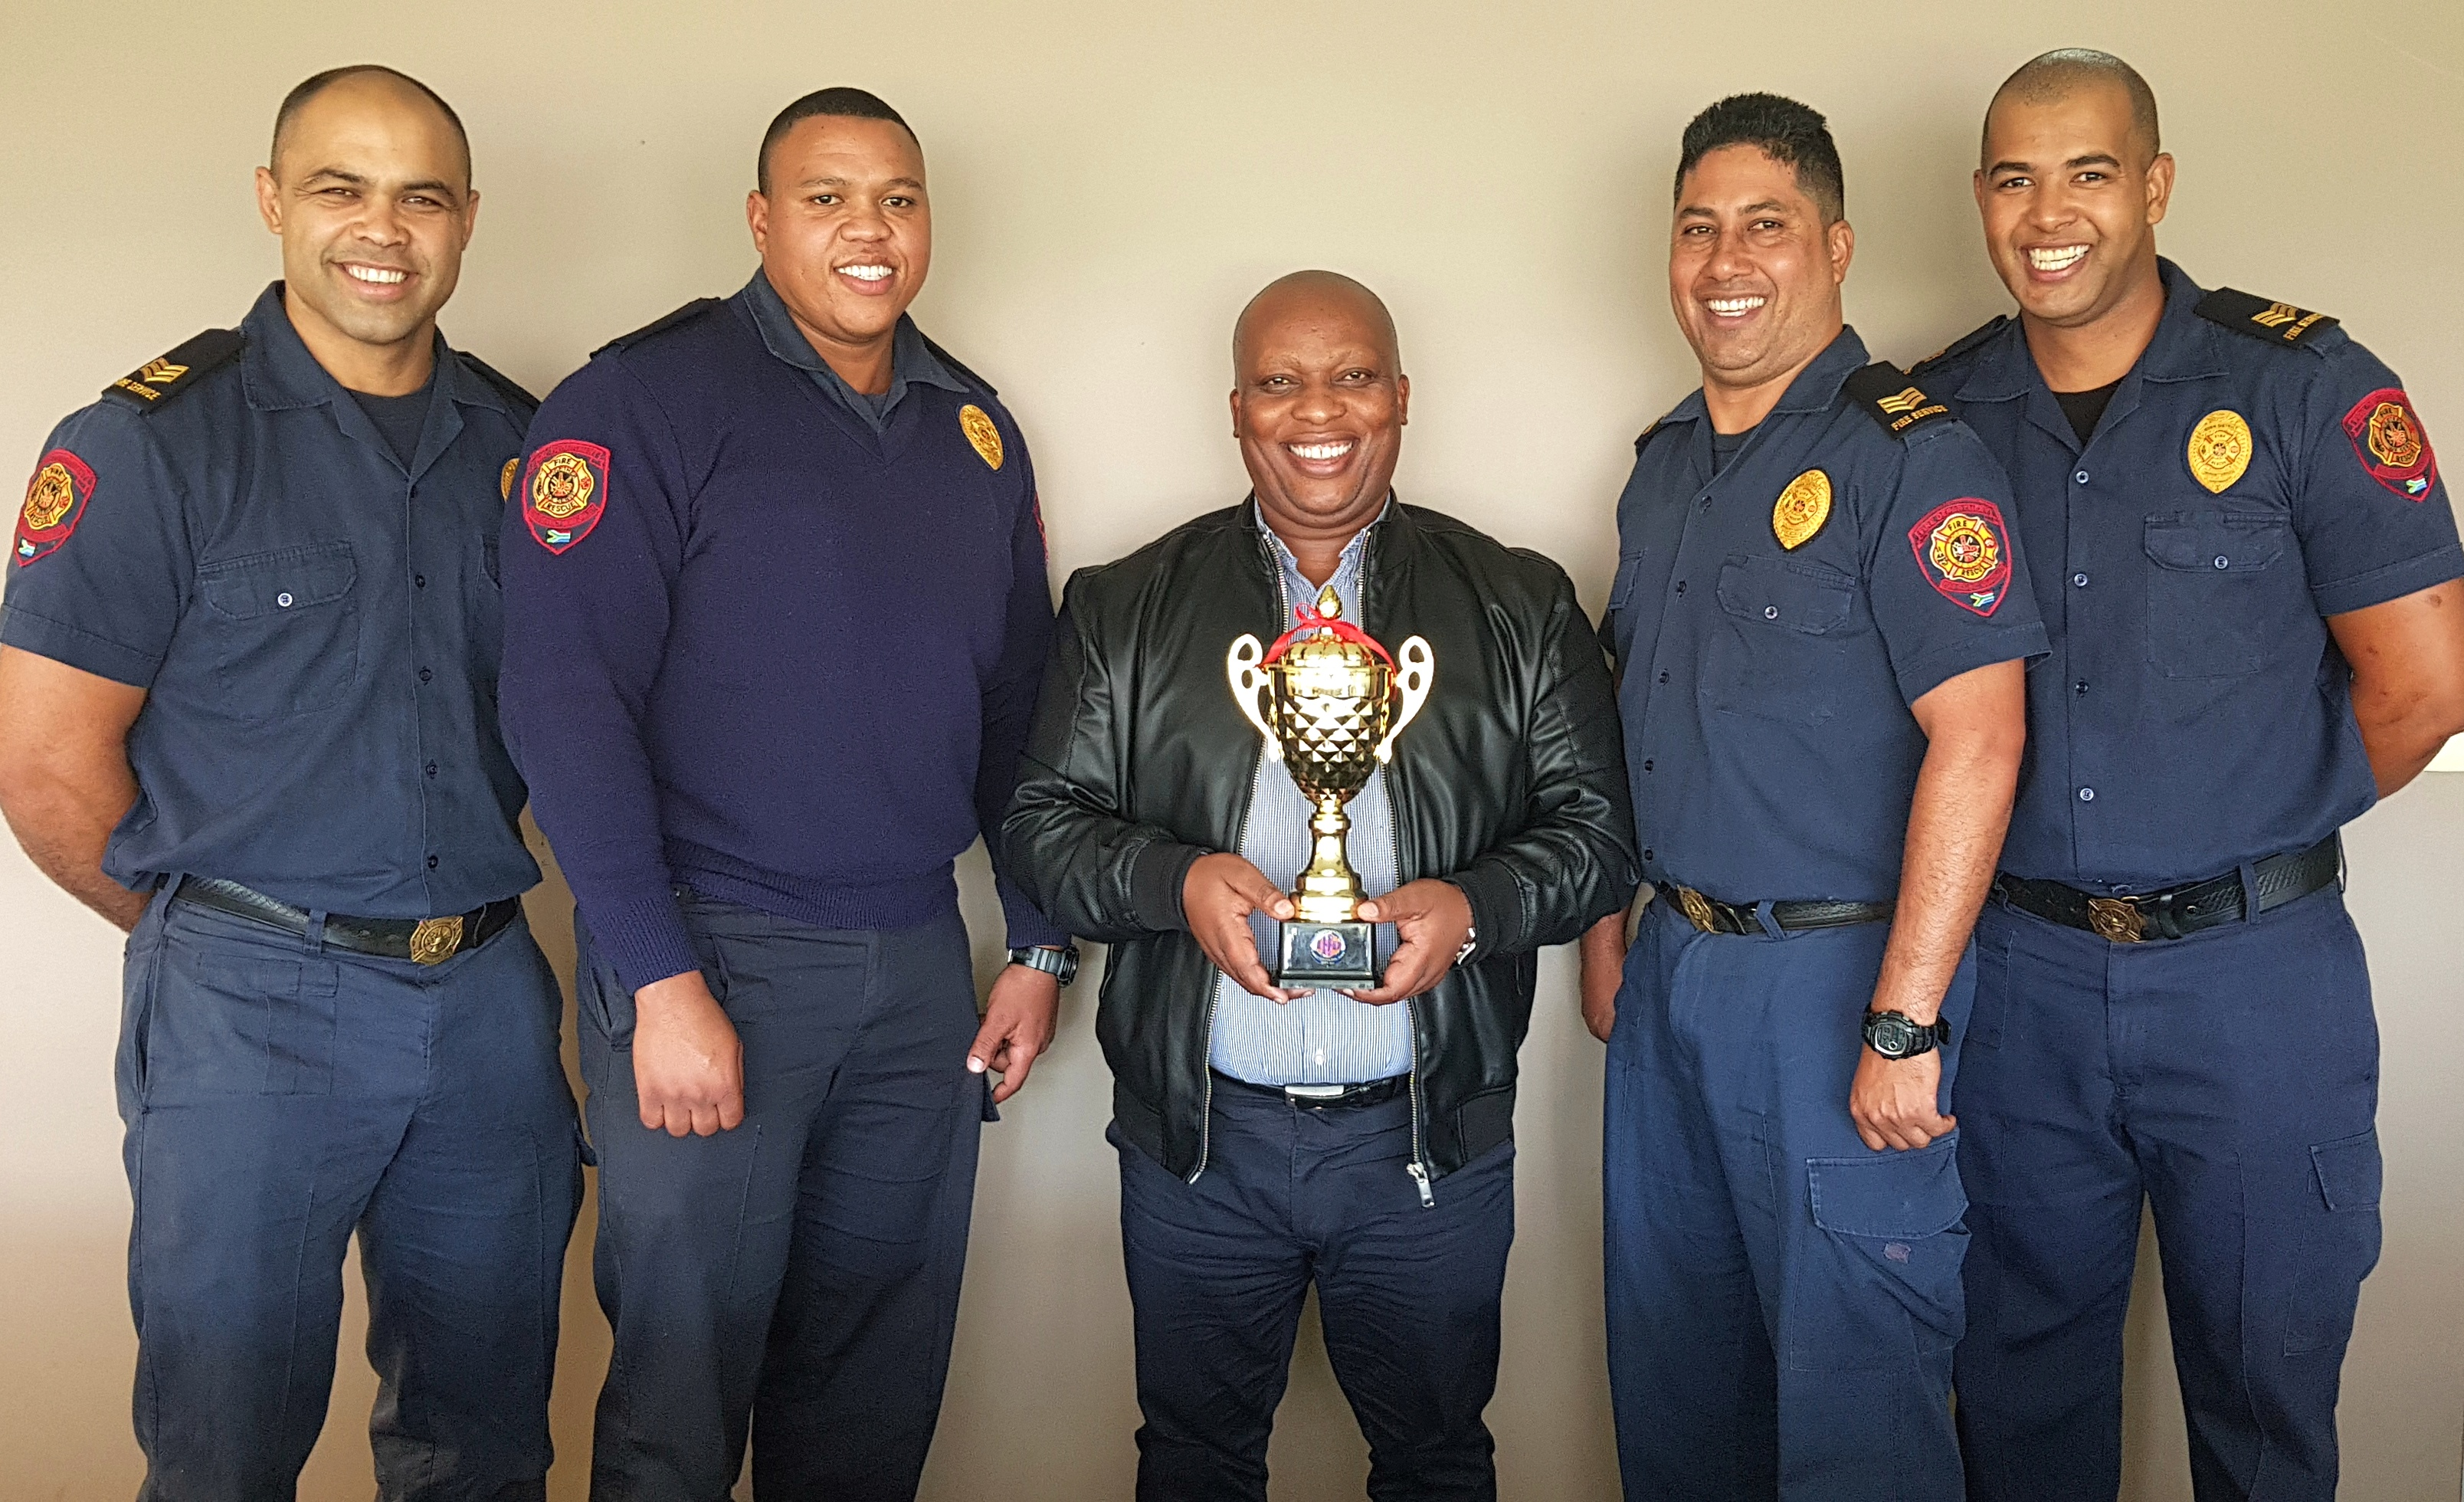 Garden Route District Municipality Wins The Iffd Challenge Garden Route District Municipality